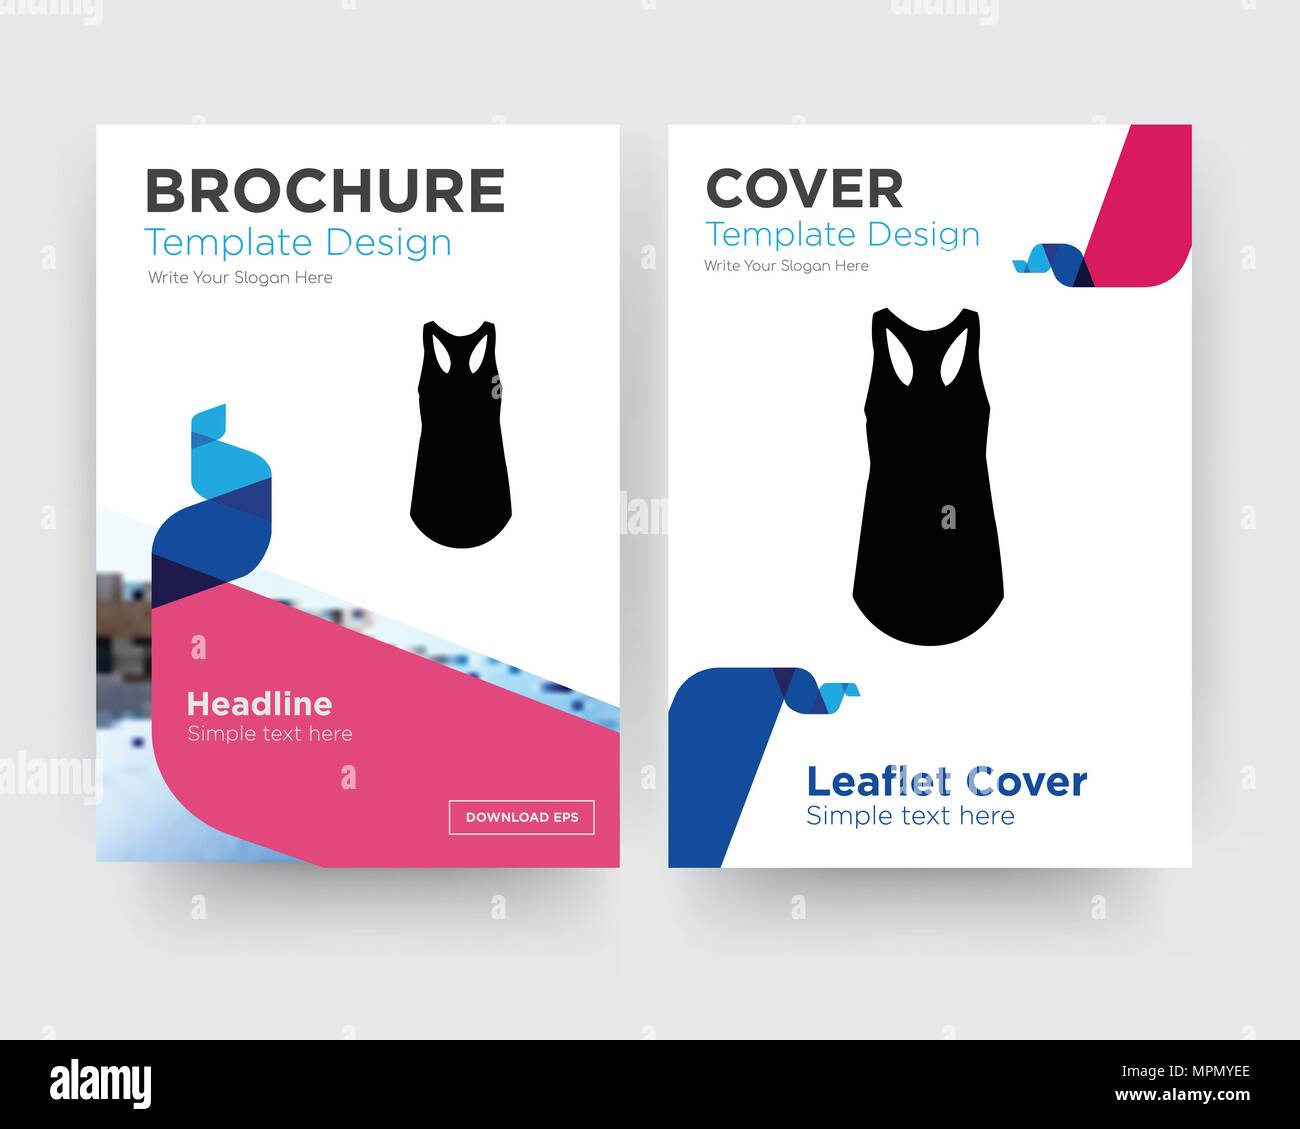 Tank Top Brochure Flyer Design Template With Abstract Photo